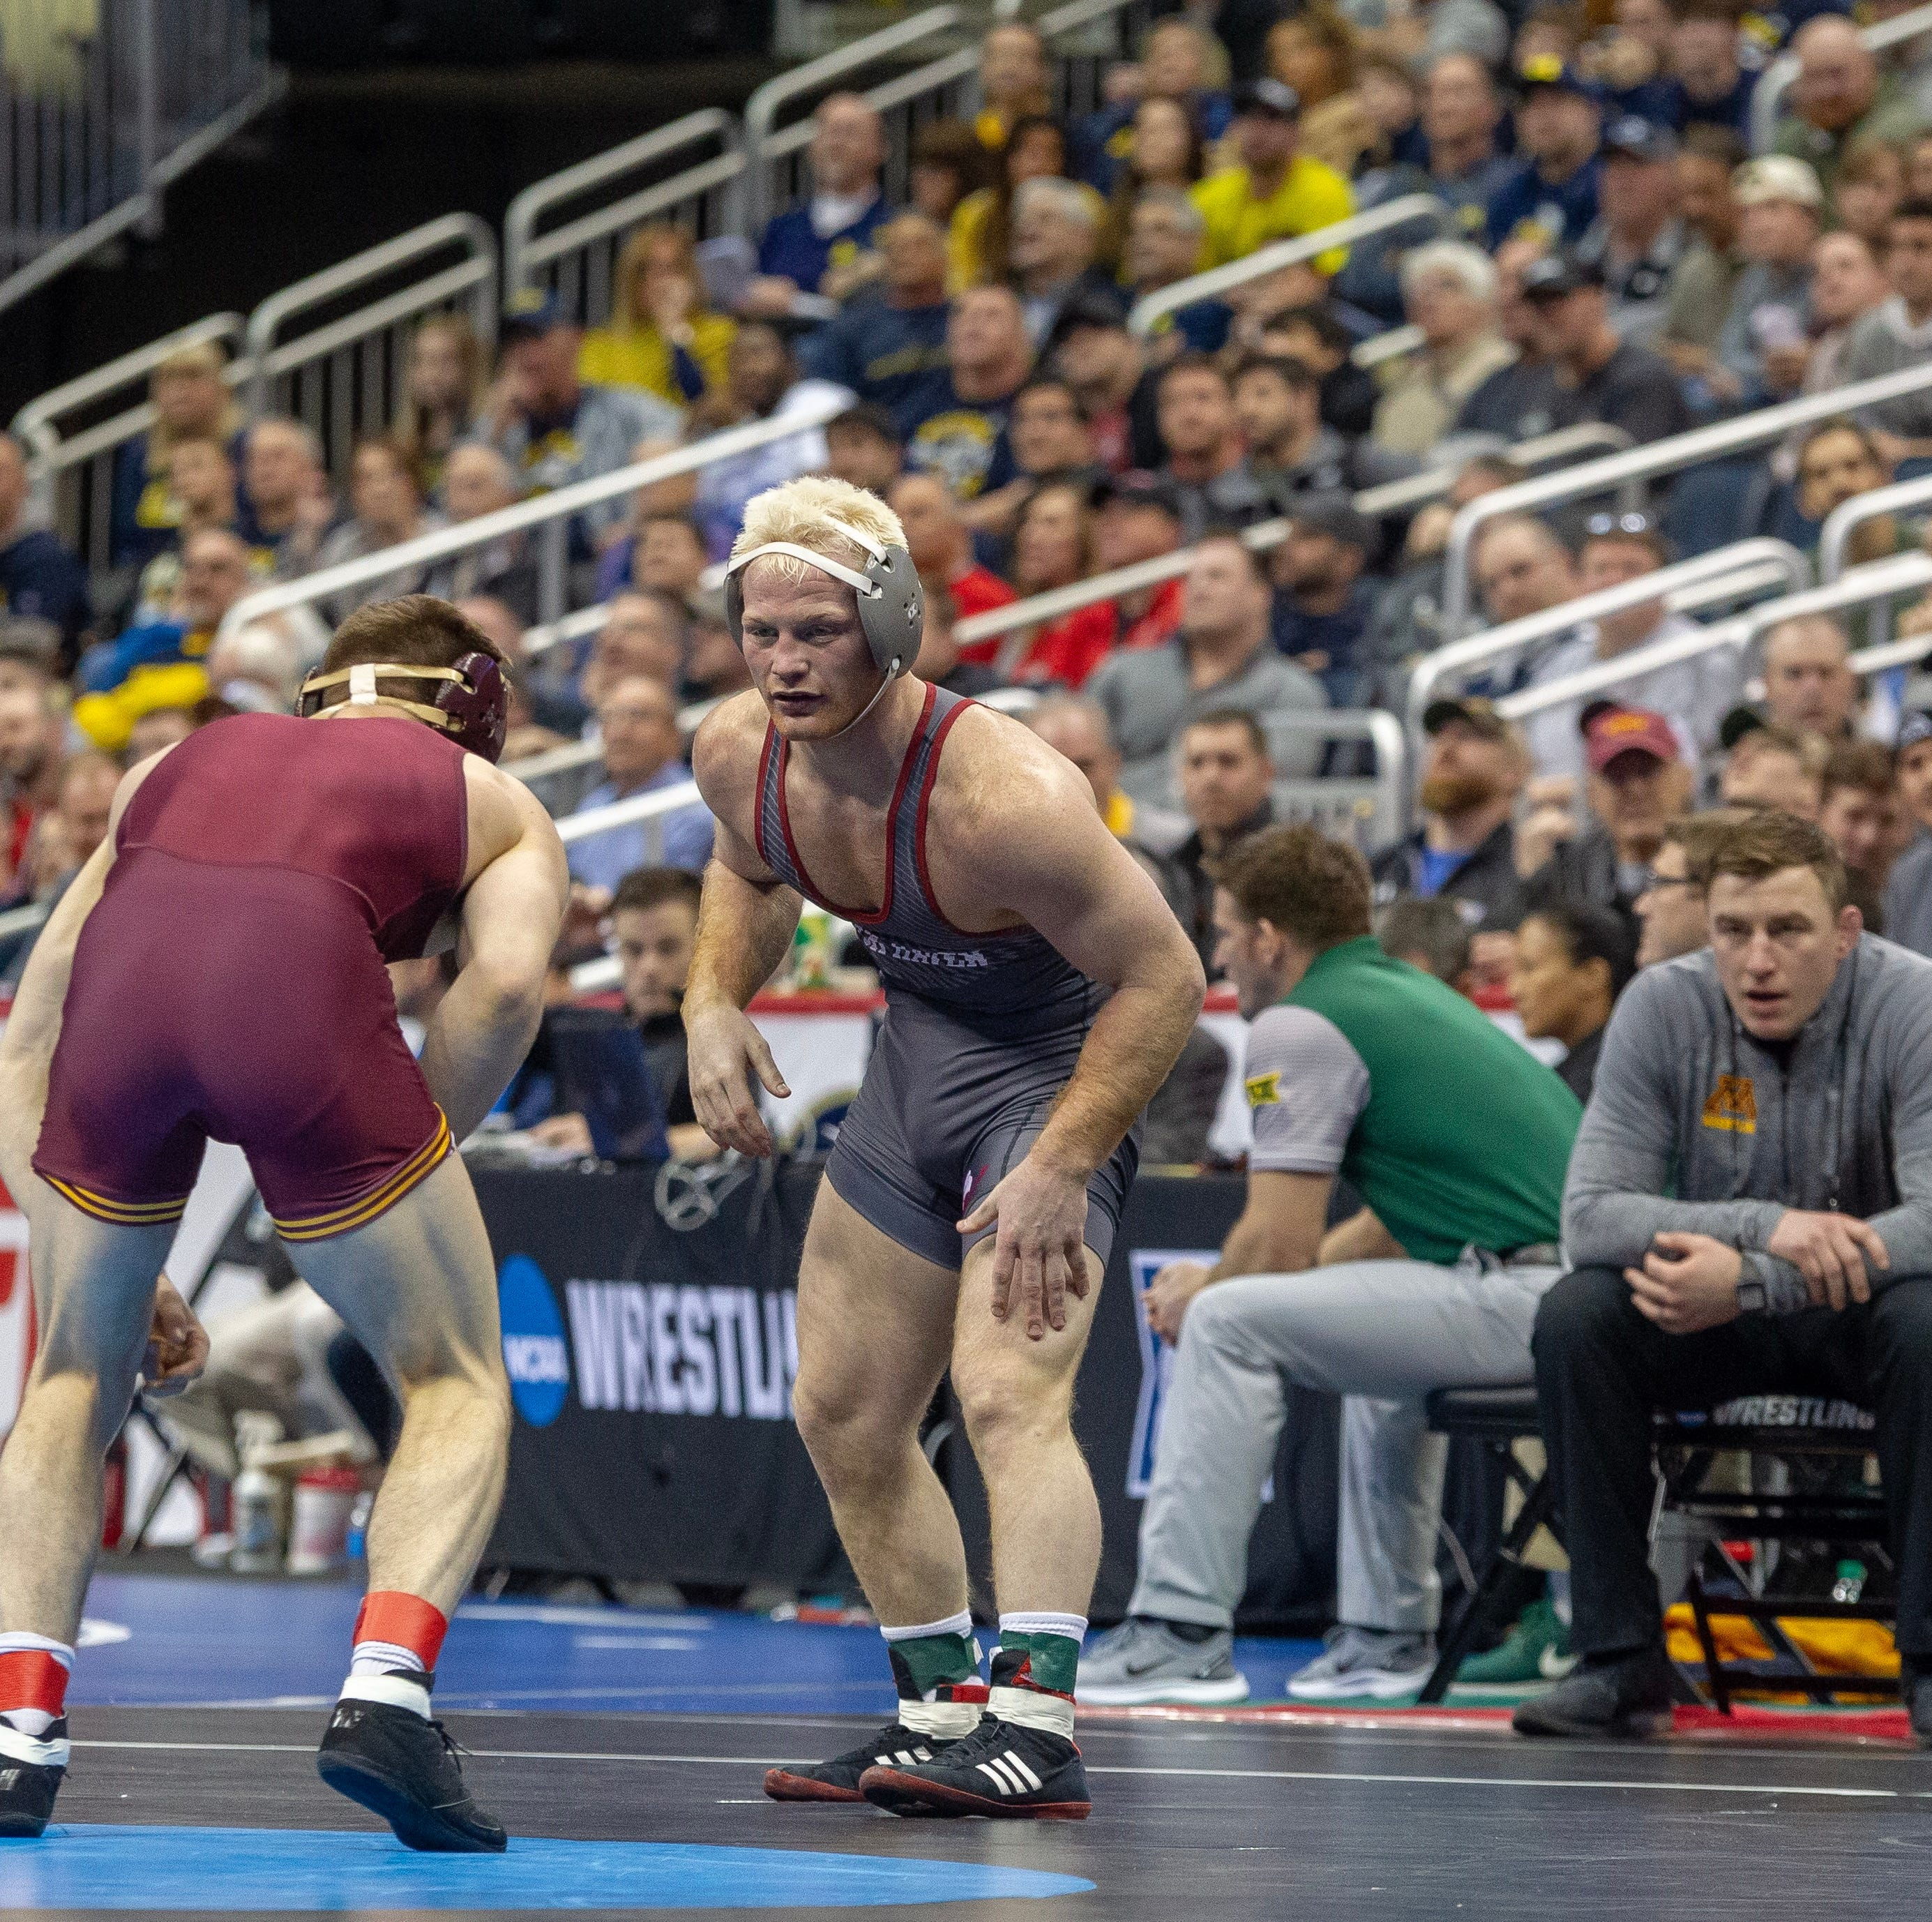 NCAA Wrestling: Chance Marsteller plows into championship quarterfinals in Pittsburgh